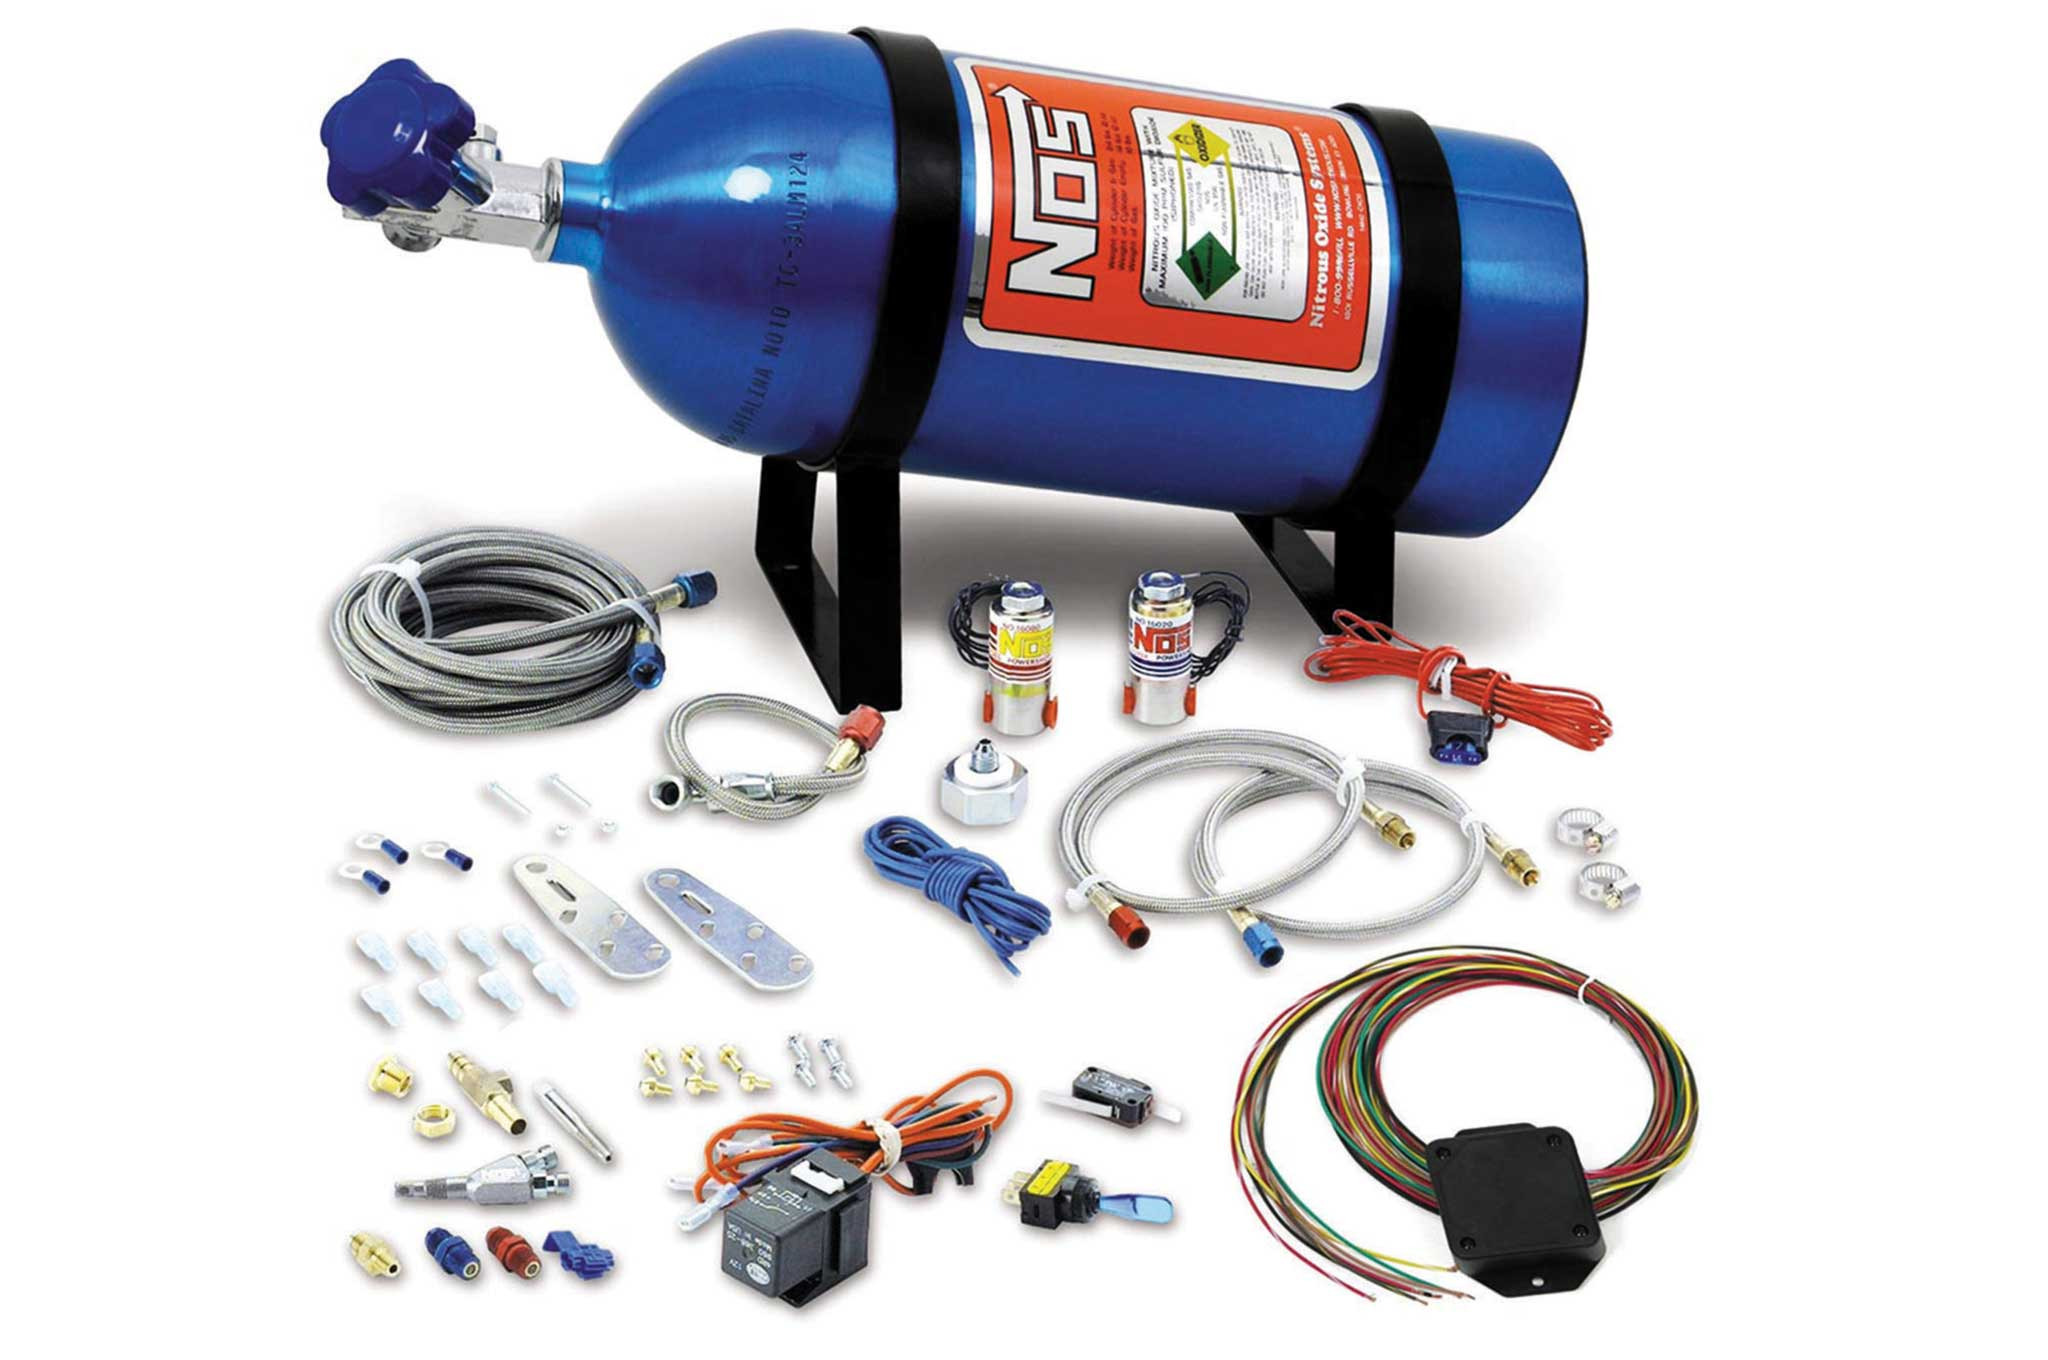 Holley Ls Engine Accessories Universal Drive By Wire Wet Nos Kit Wiring Diagram For Nitrous Systems